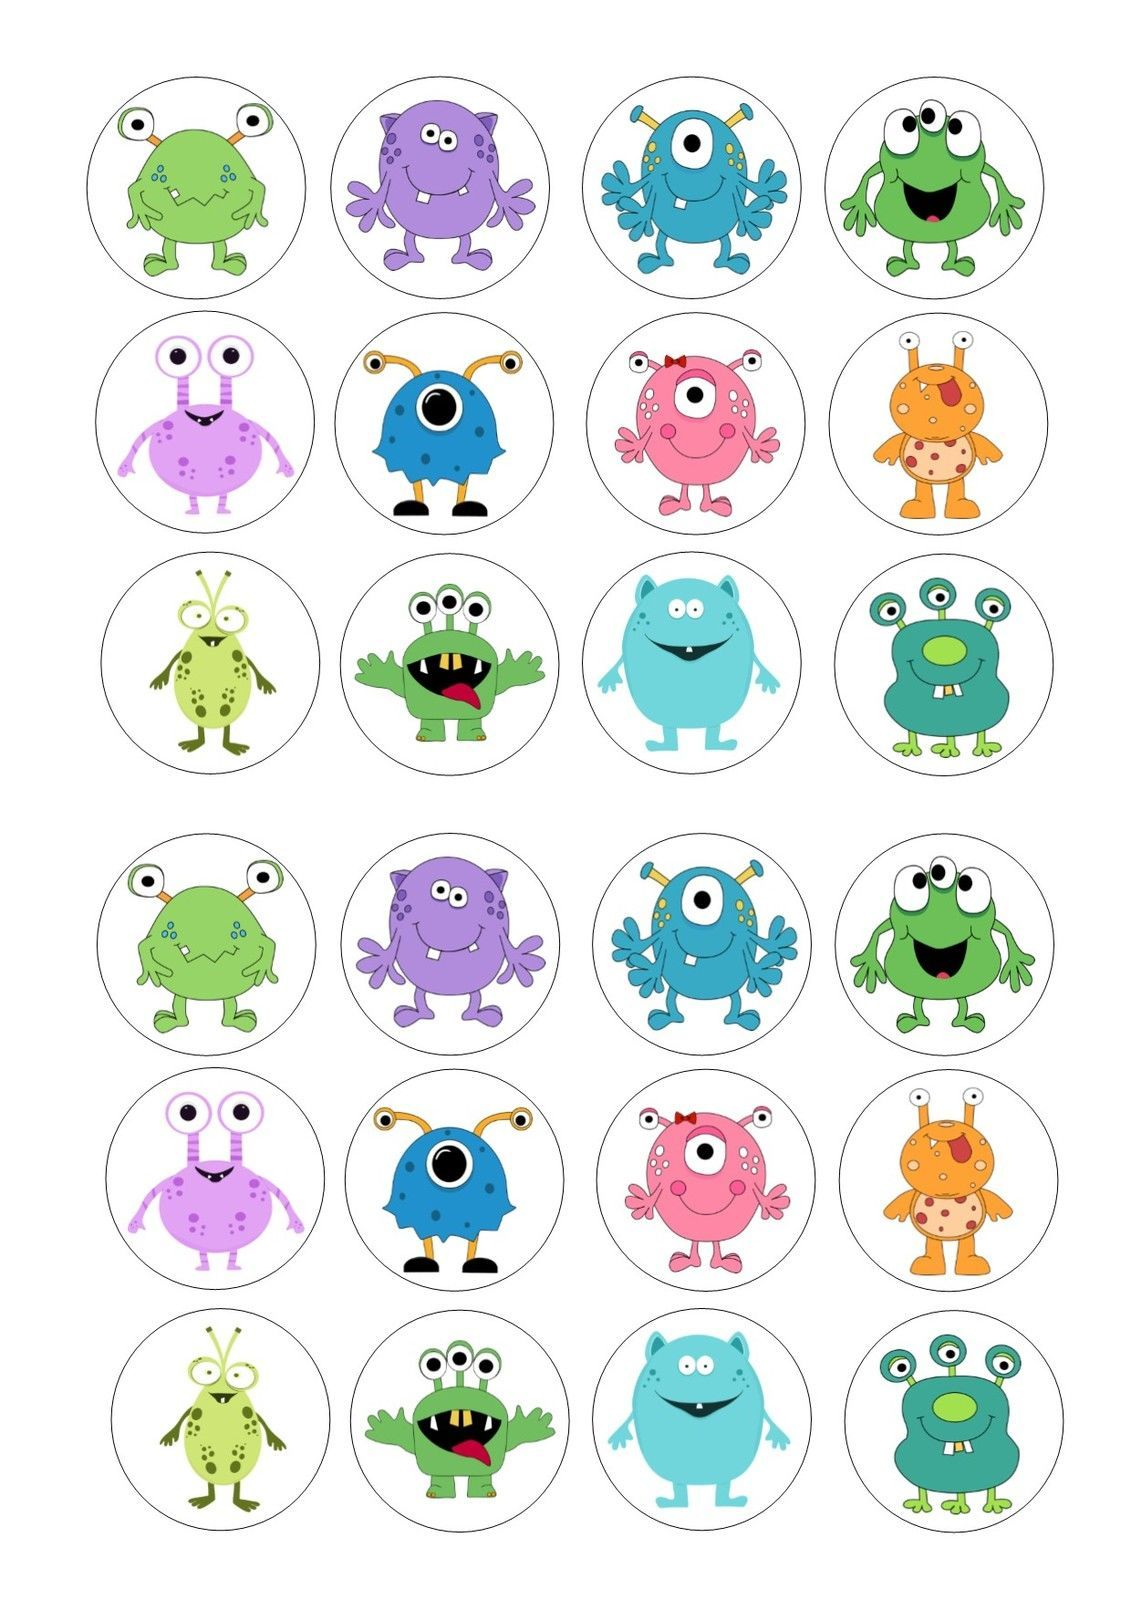 24 Icing Cupcake Cake Toppers Decorations Edible Cute